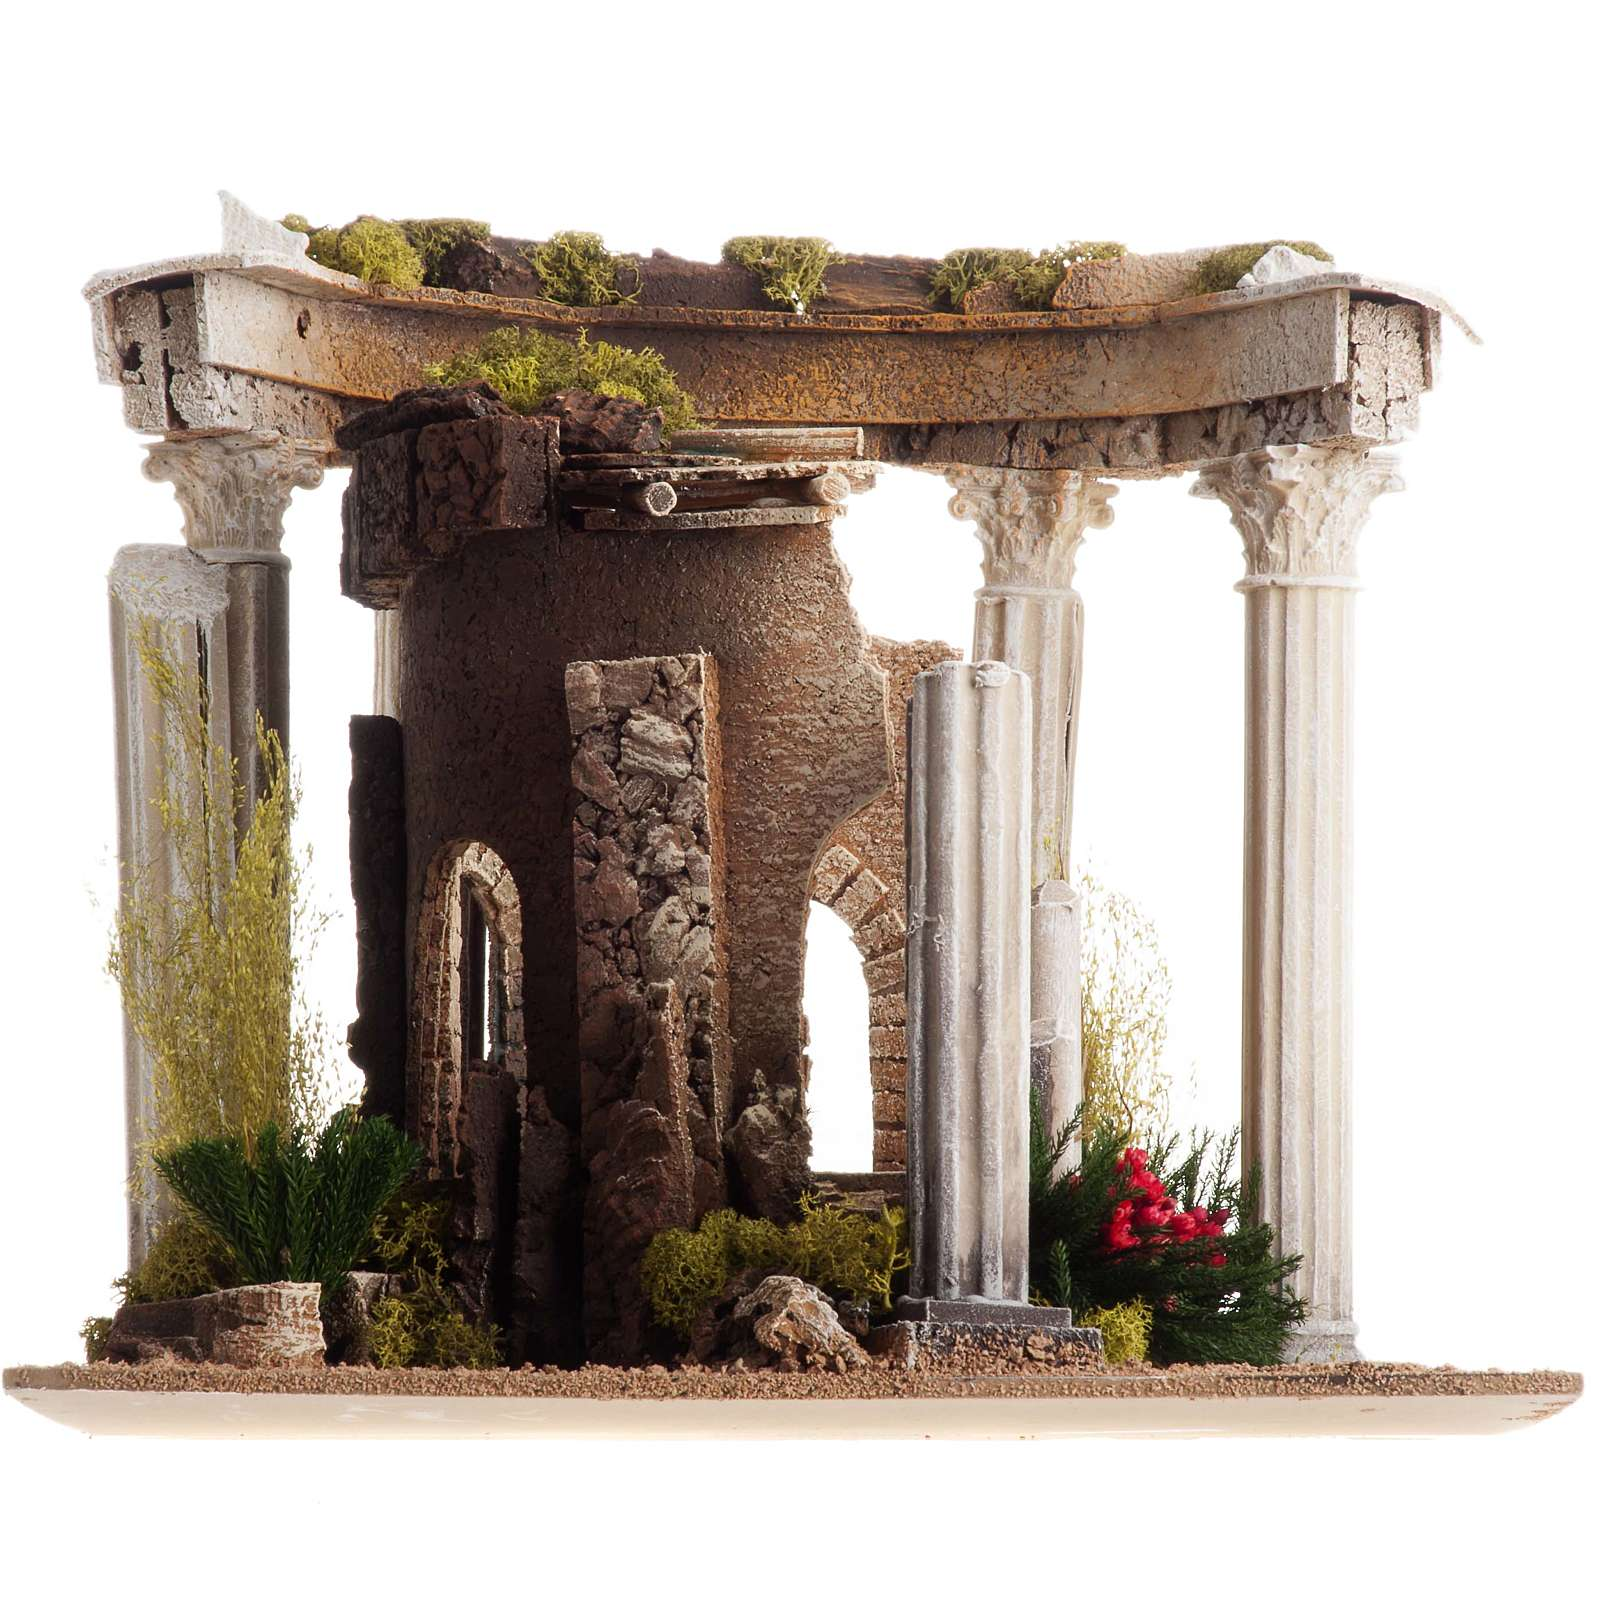 Nativity setting, Roman temple with columns and house 4